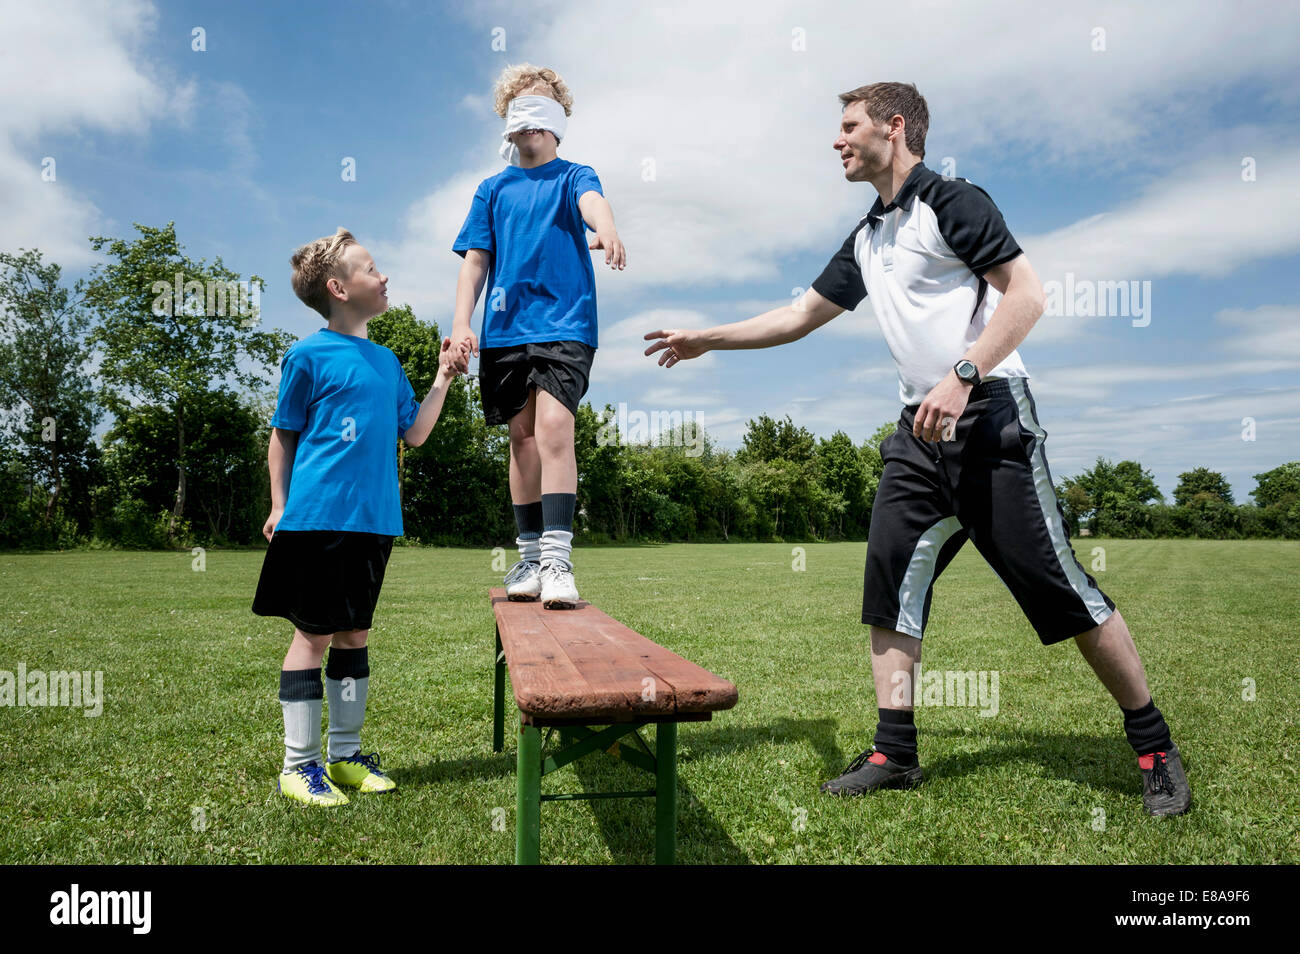 Soccer coach teaching young player trust - Stock Image